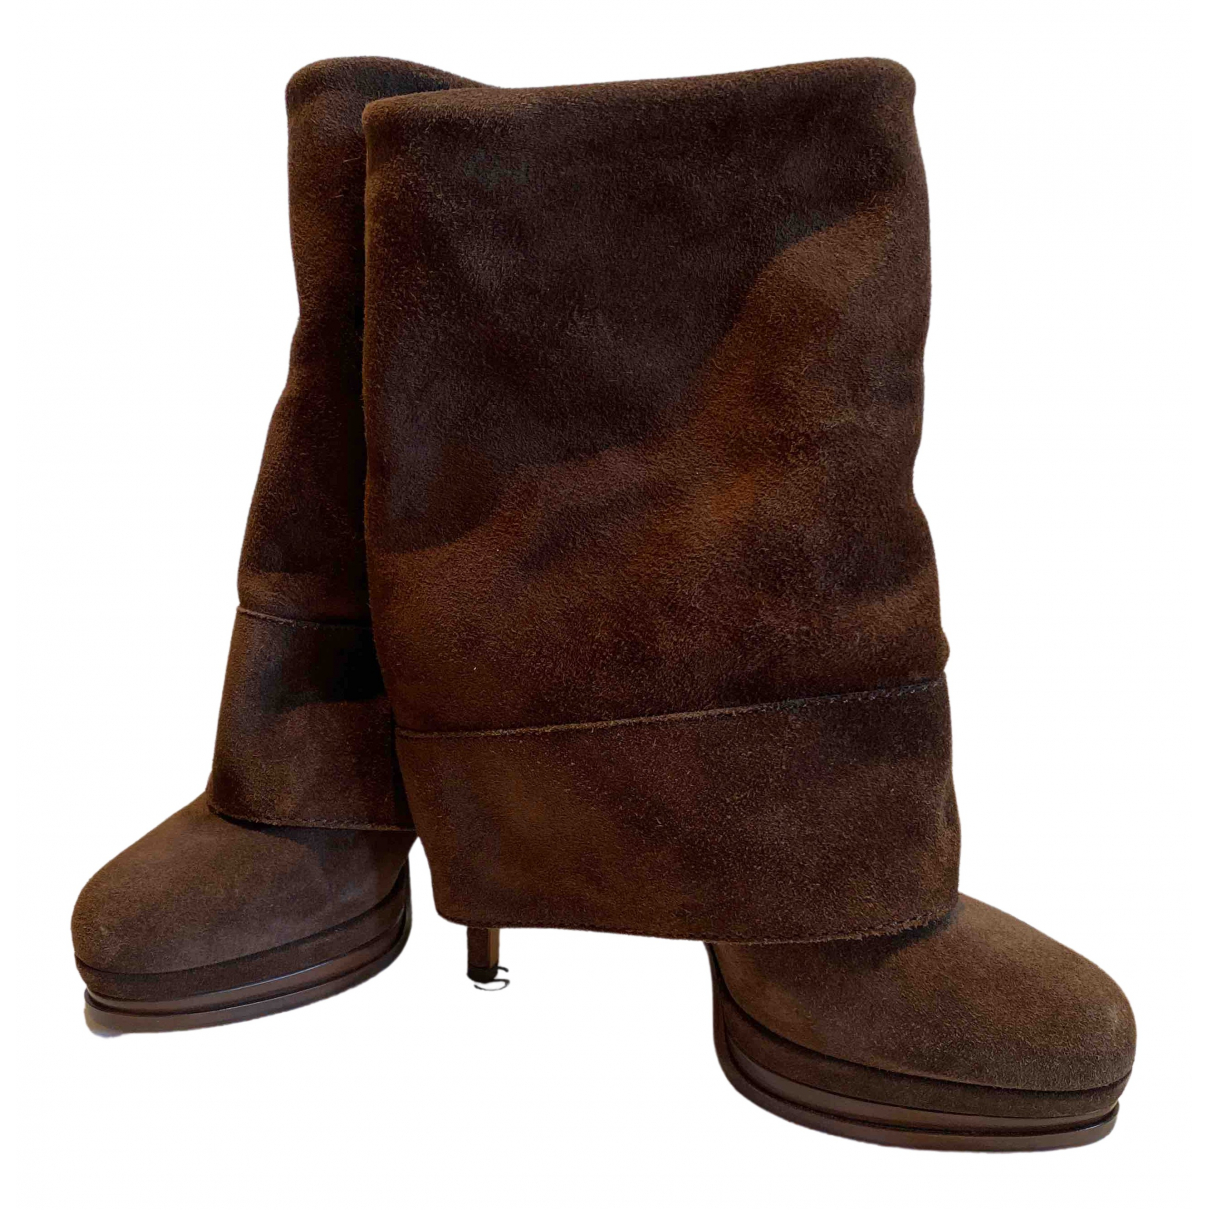 Casadei \N Brown Suede Ankle boots for Women 36 EU